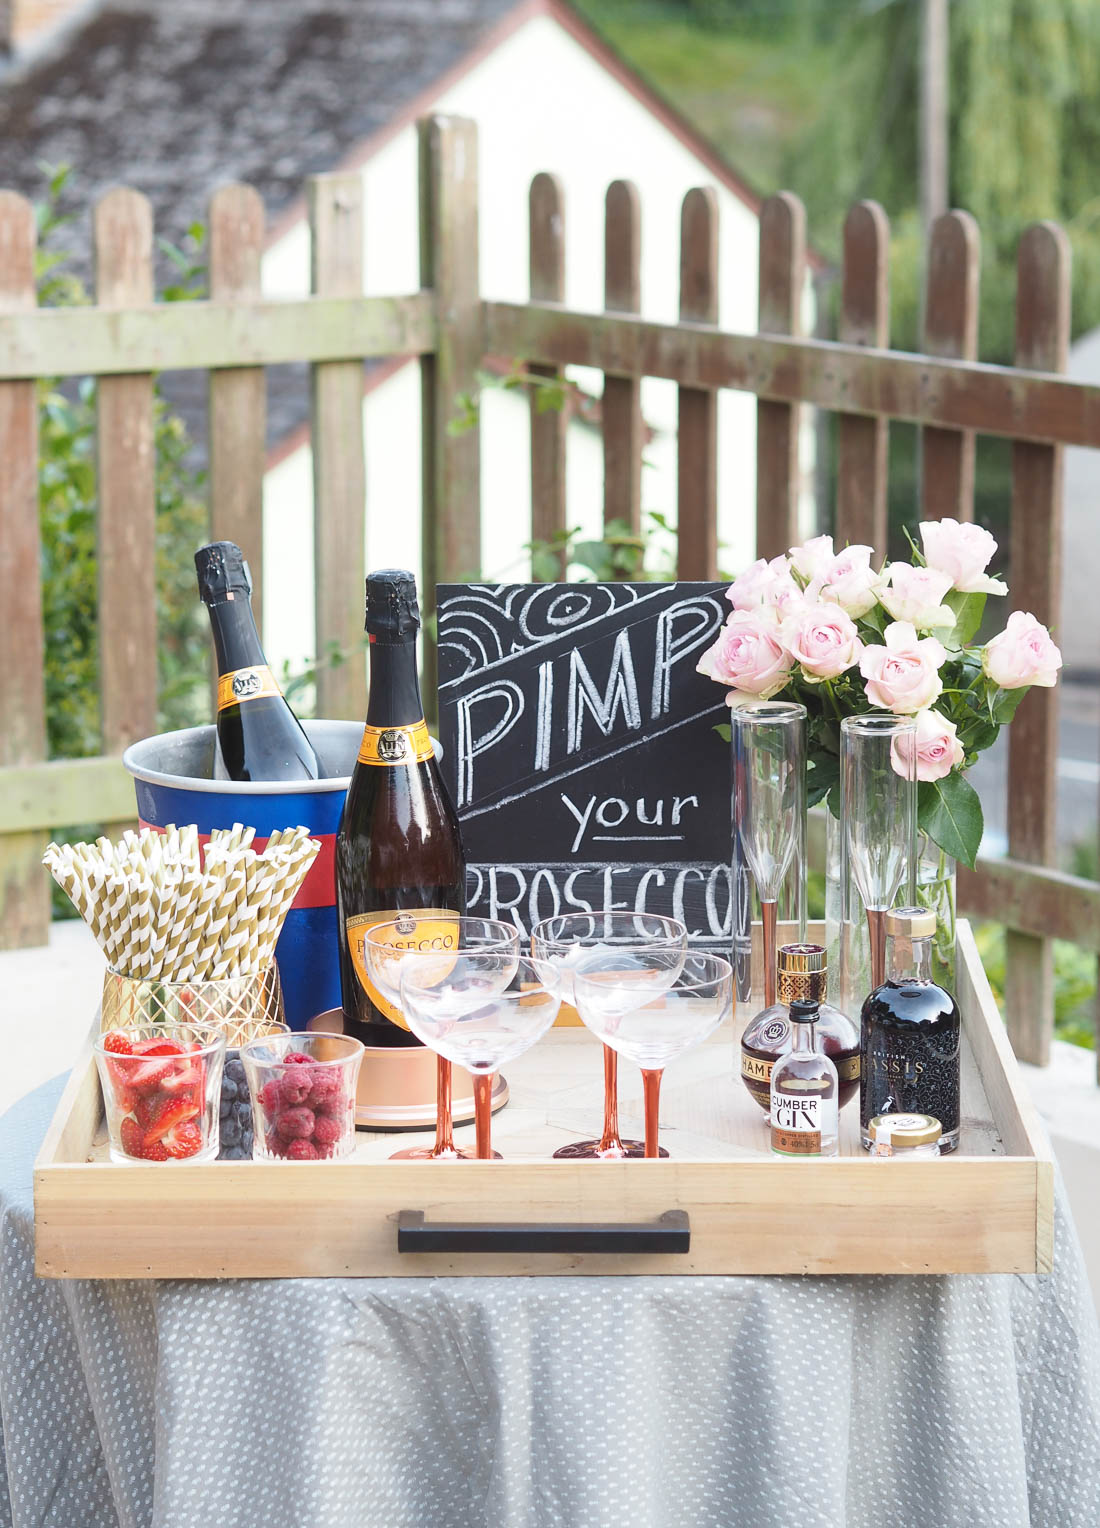 Prosecco Cocktails The Prosecco Cart 10 Ways To Pimp Your Prosecco